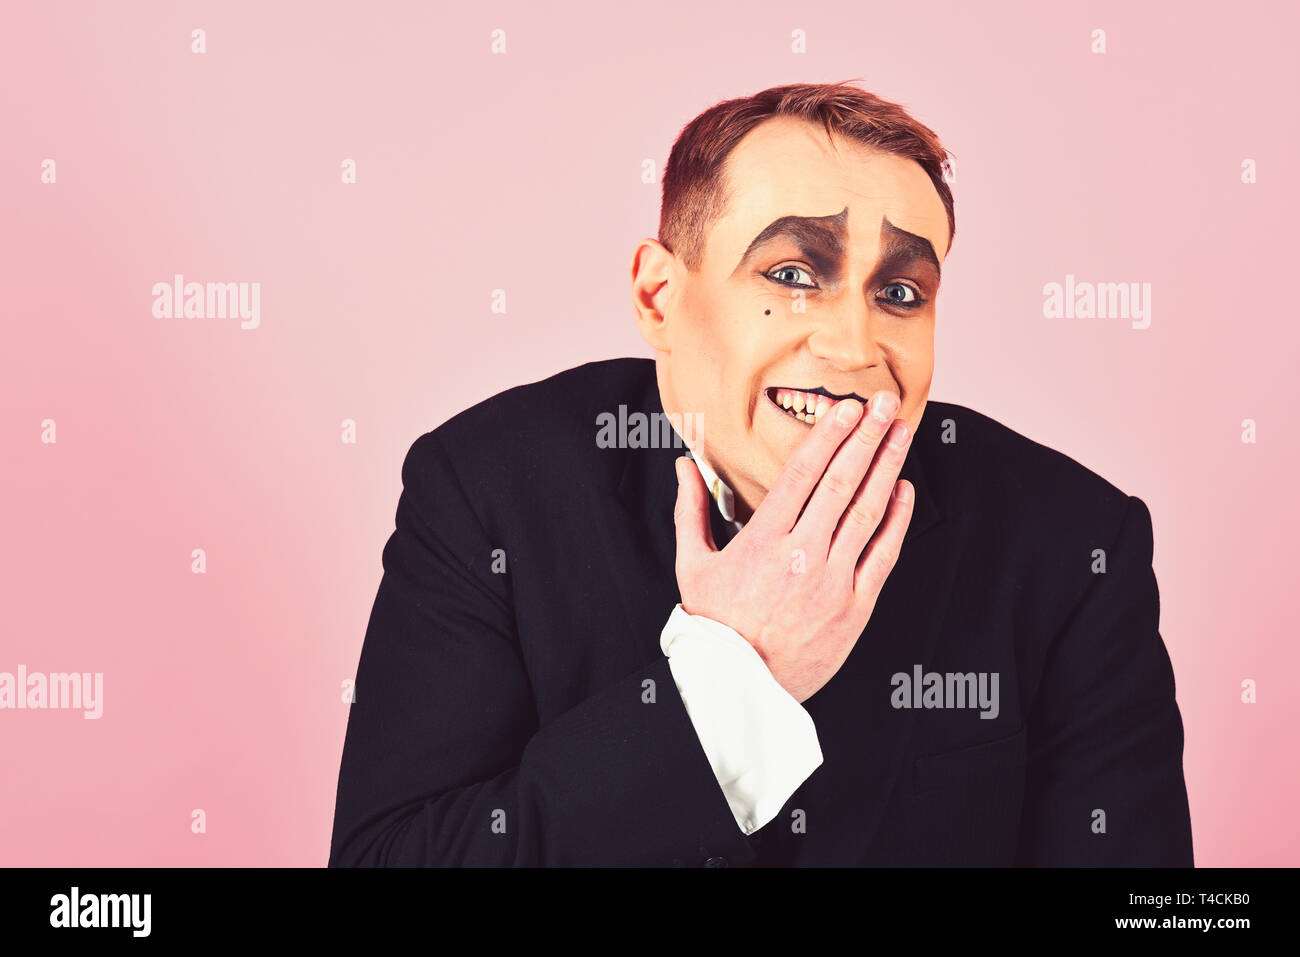 Laughing face. Comedian performer giggling. Mime artist. Mime with face paint. Man with mime makeup. Theatre actor miming. Stage actor miming - Stock Image